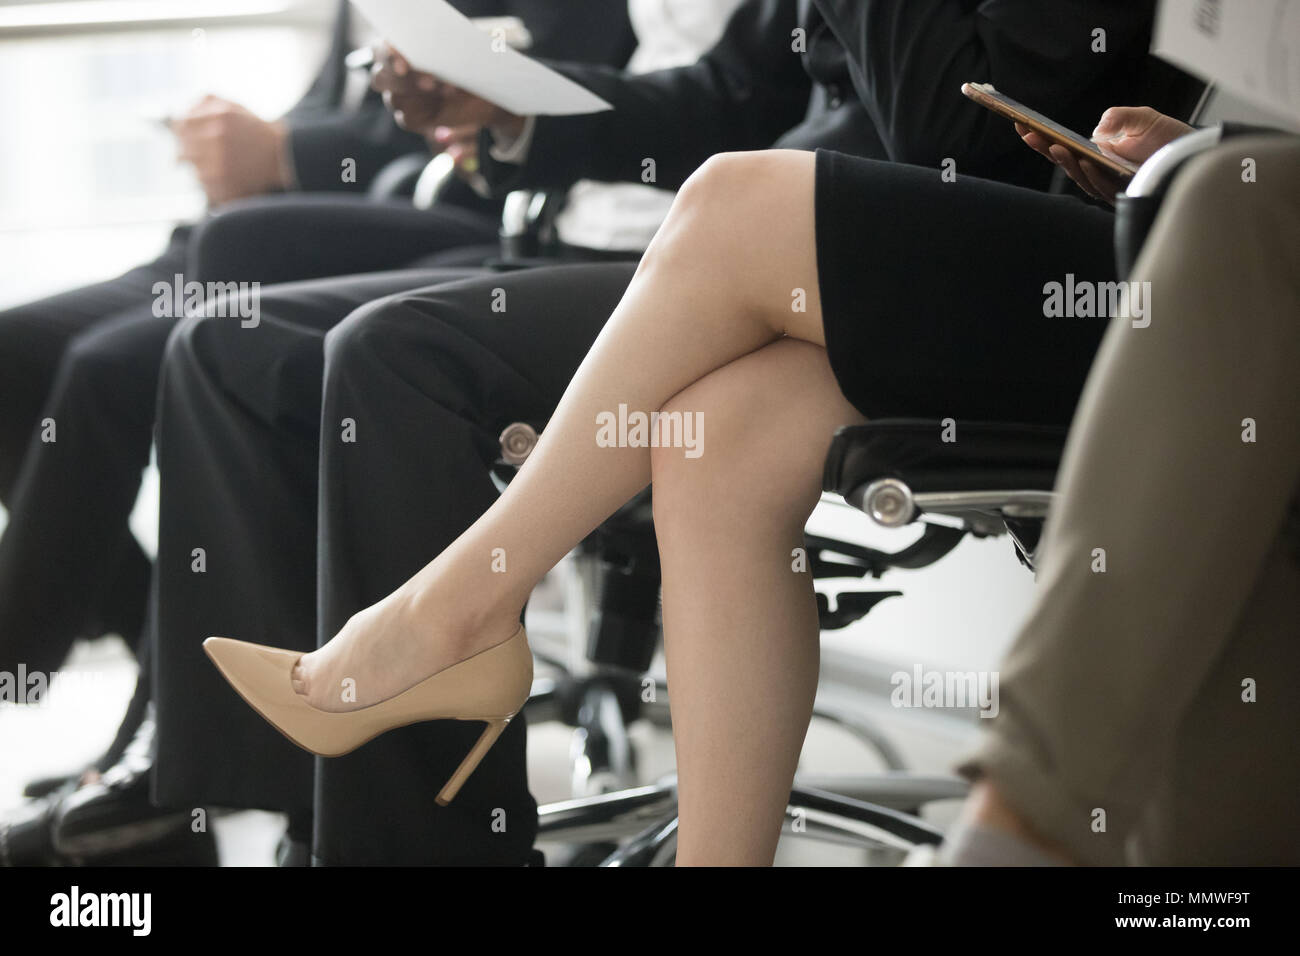 Business people sitting in row waiting for interview, legs close - Stock Image